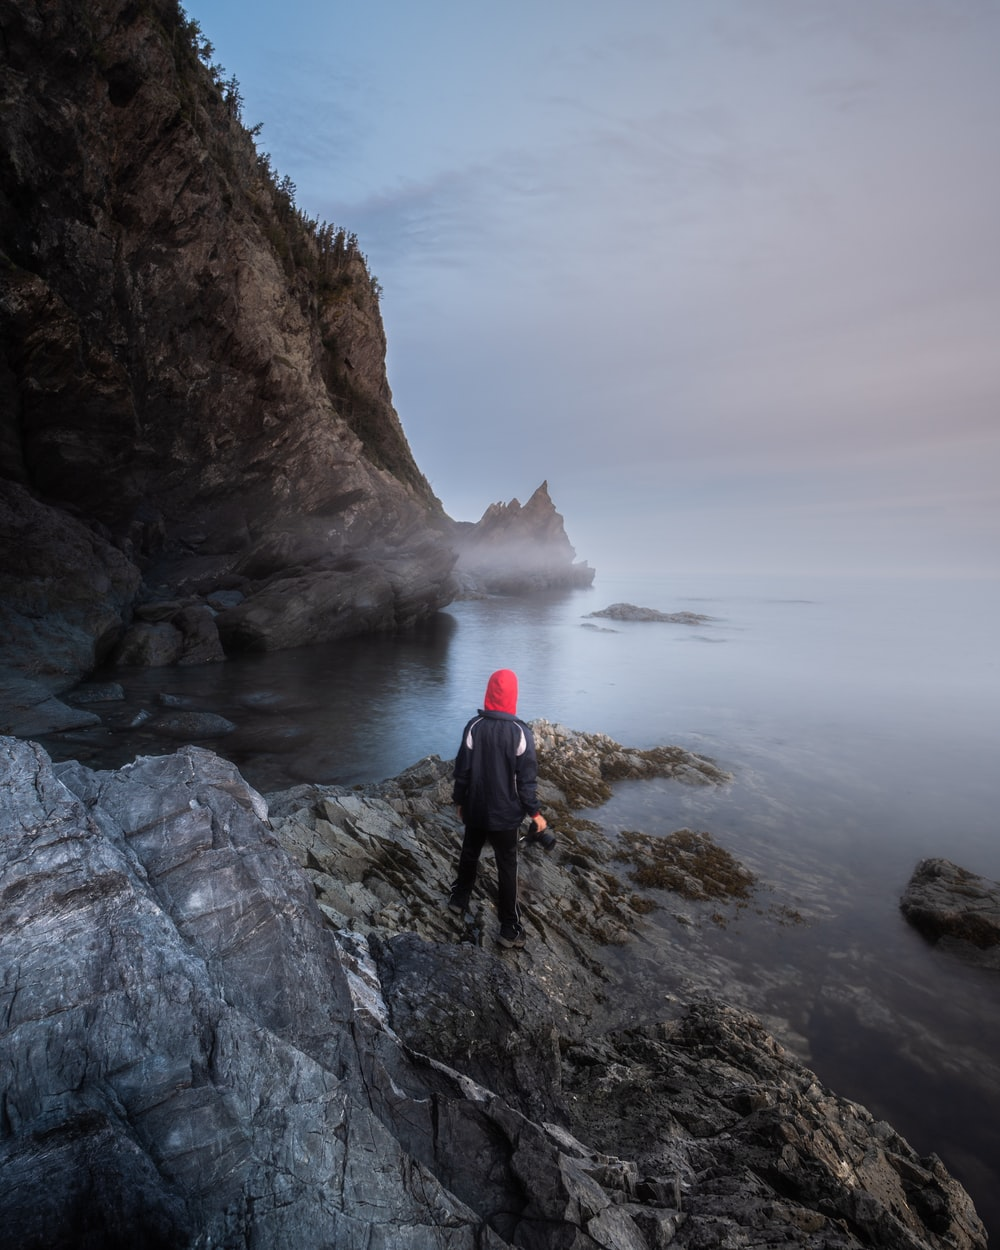 person in black jacket standing on rock formation near body of water during daytime